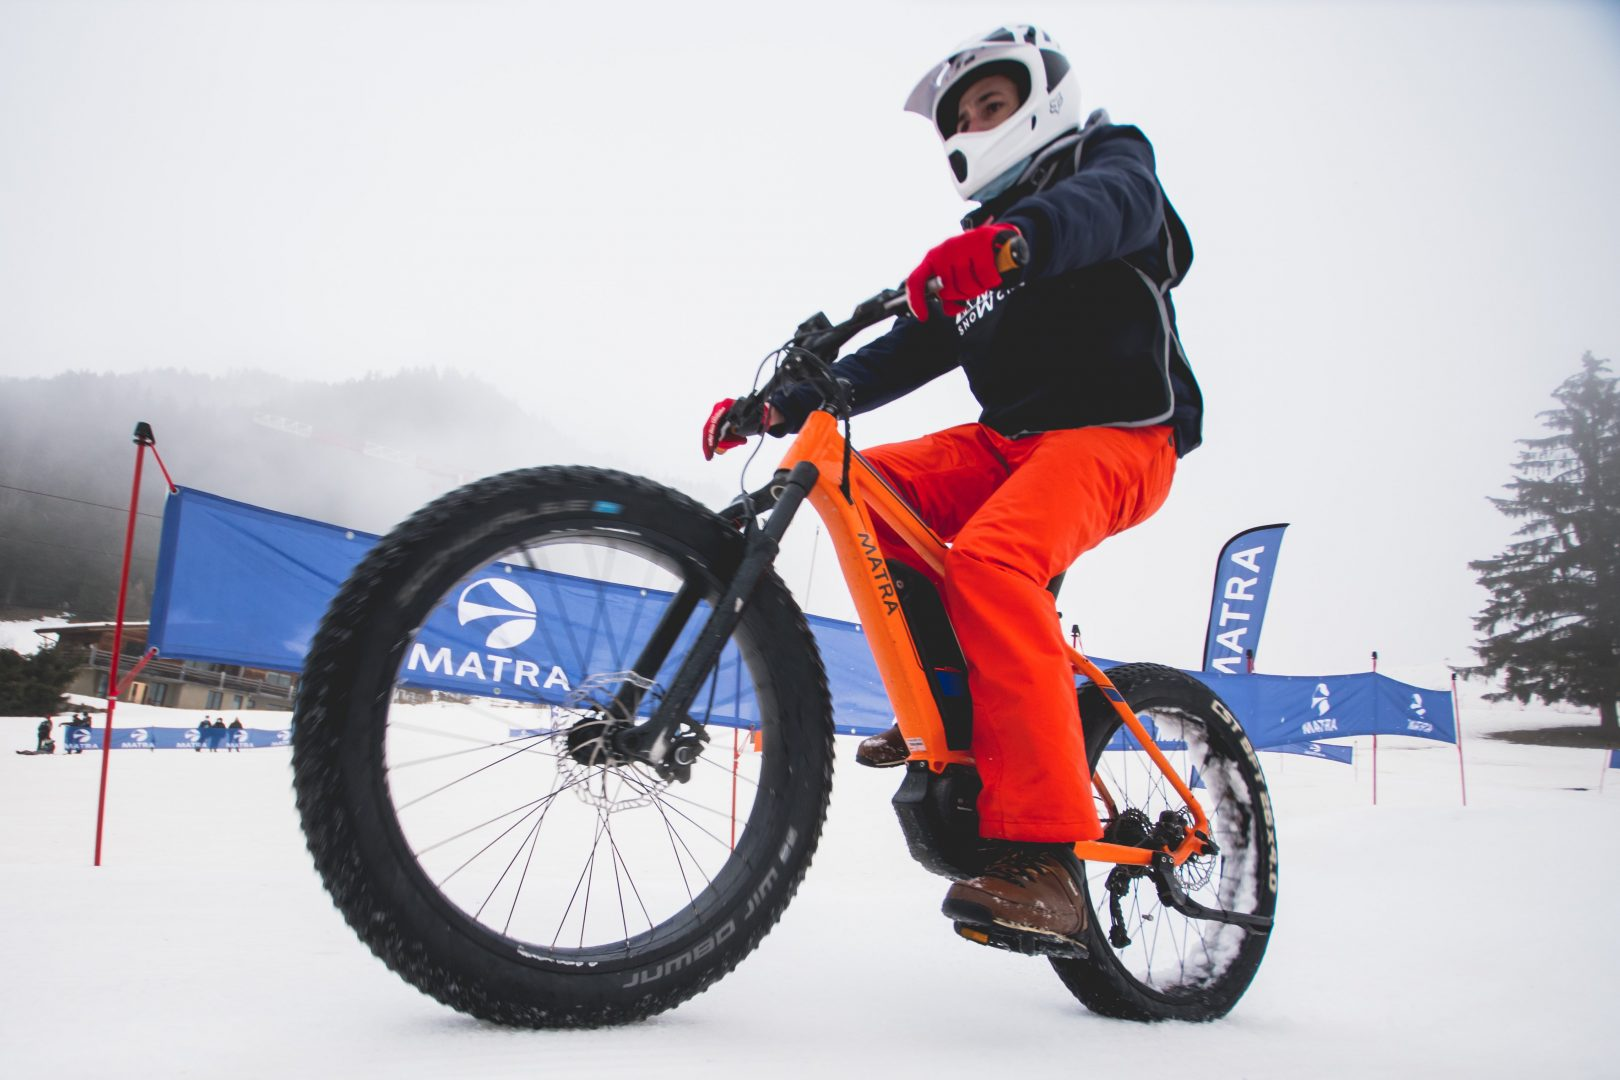 matra snow cross les contamines montjoie